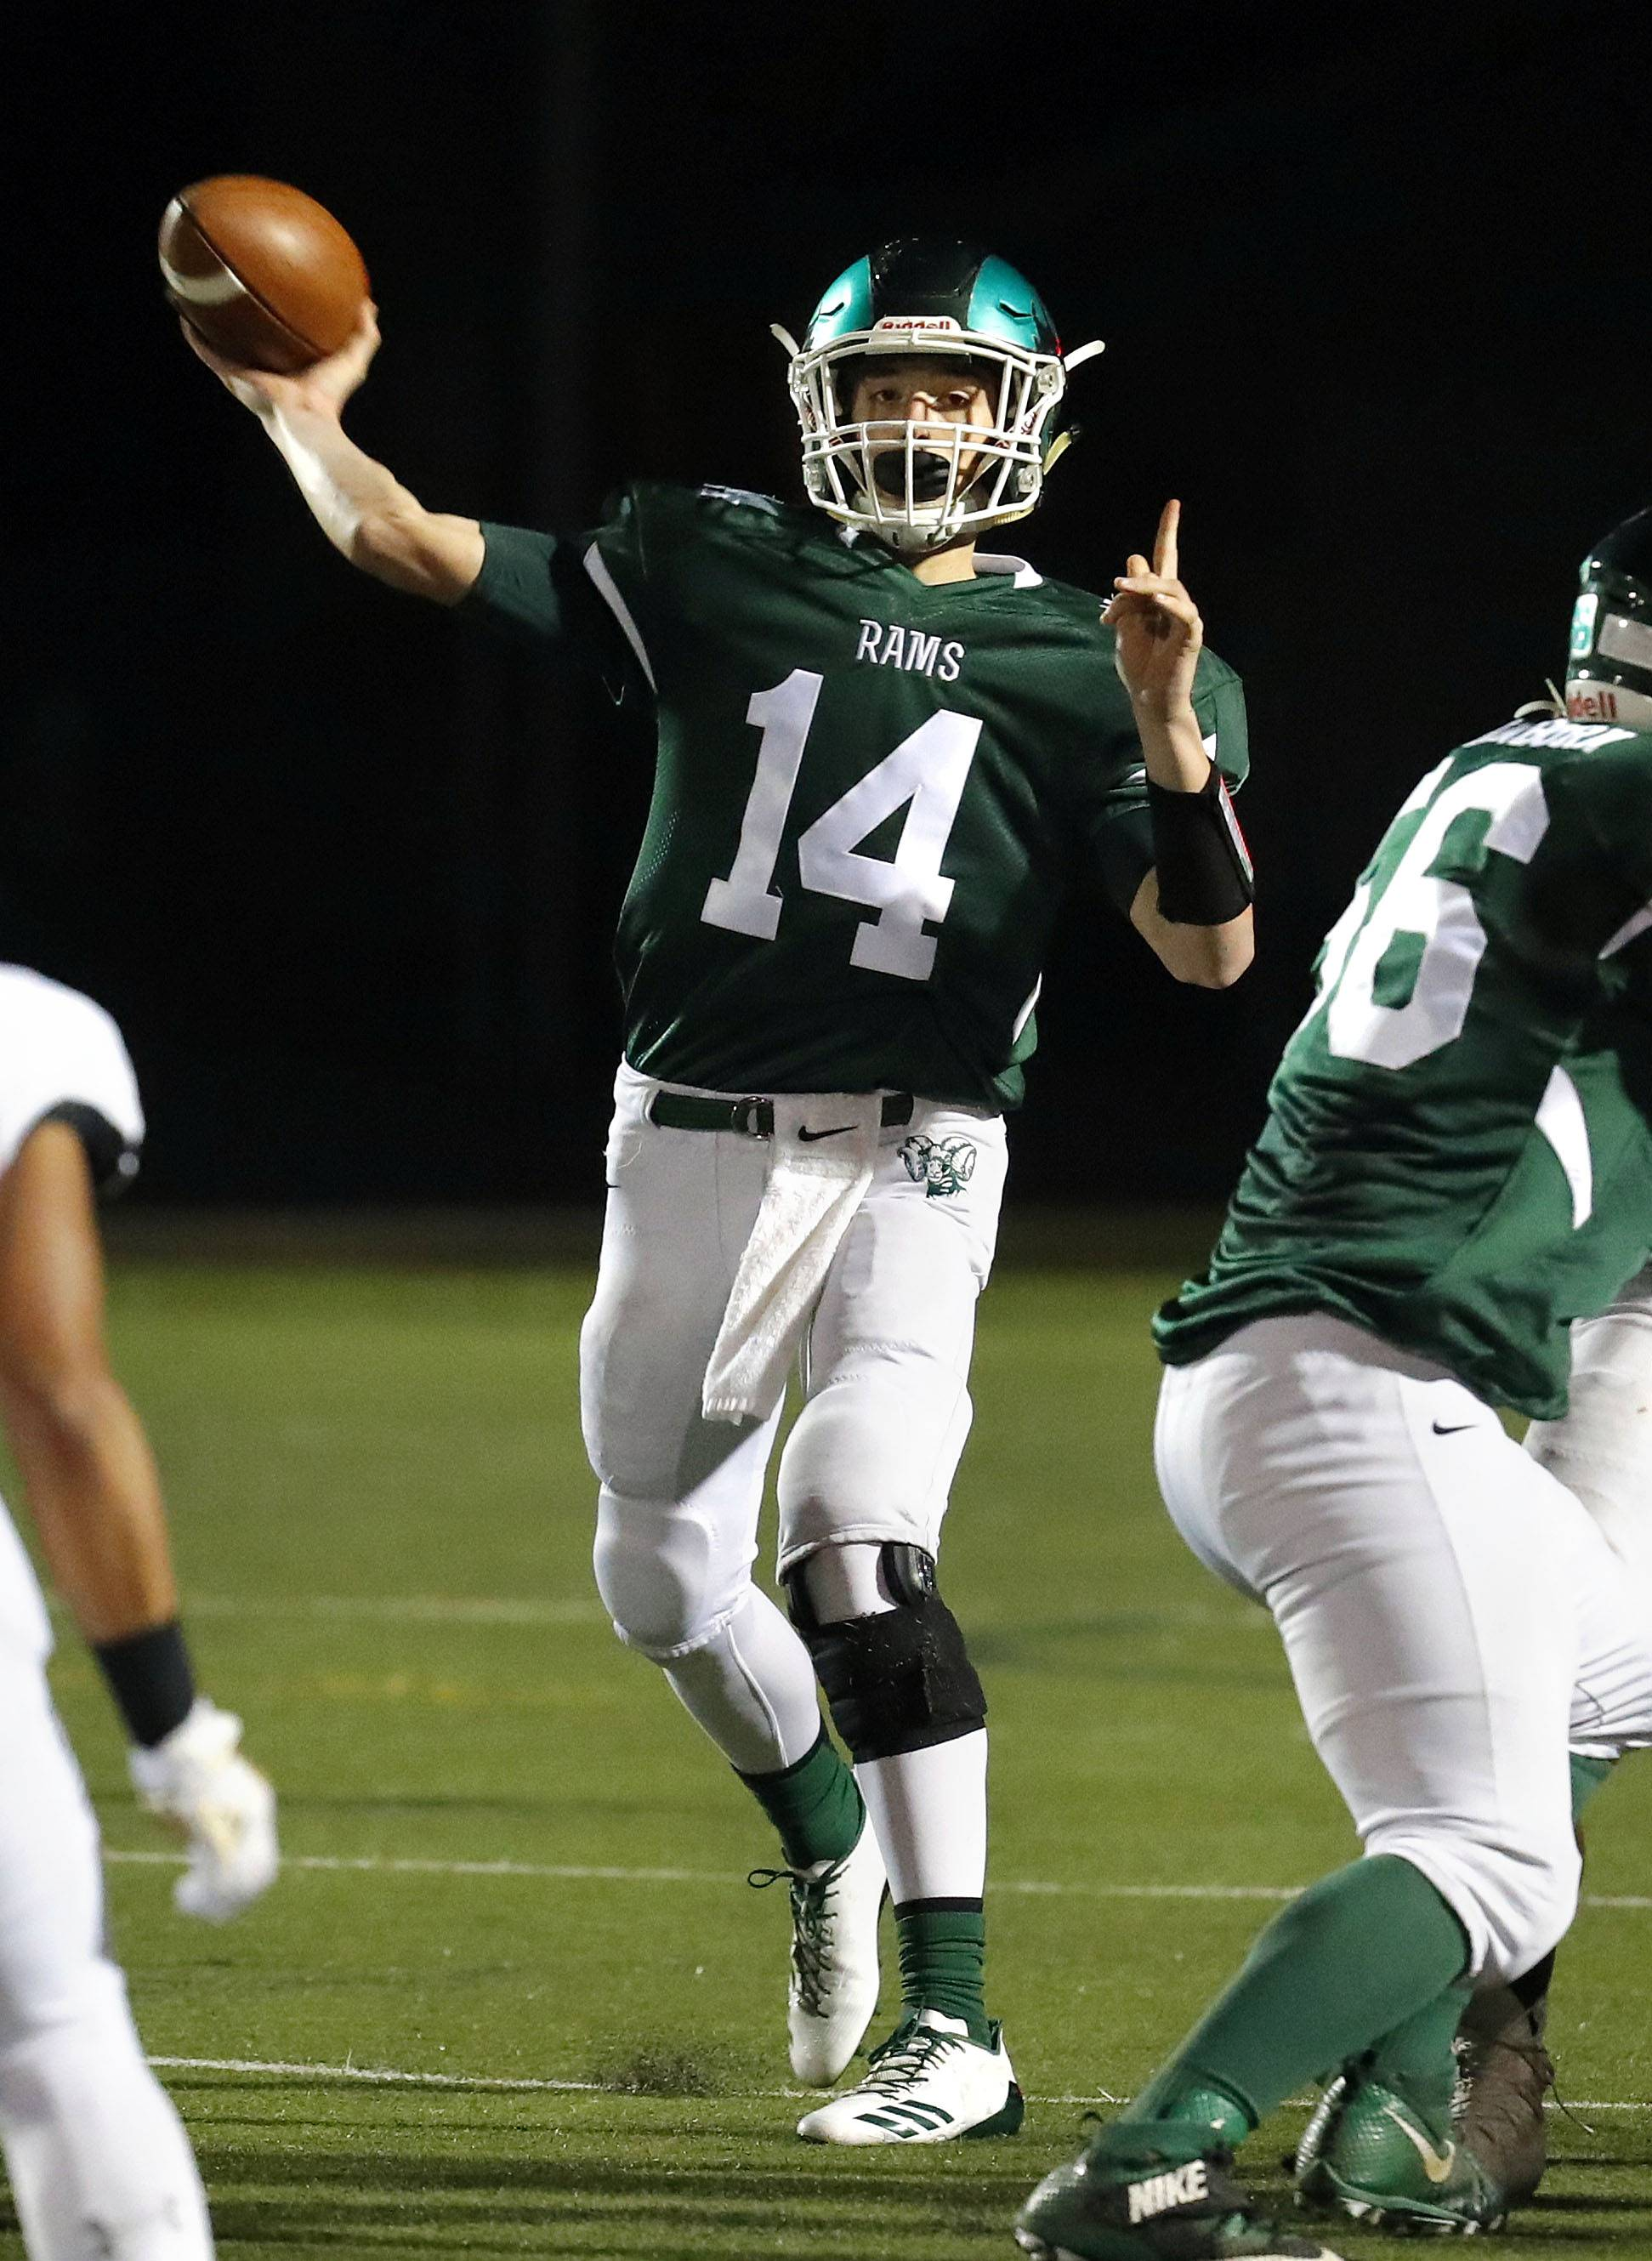 Grayslake Central QB Sam Lennartz passes against Grayslake North on Friday night at Grayslake Central.